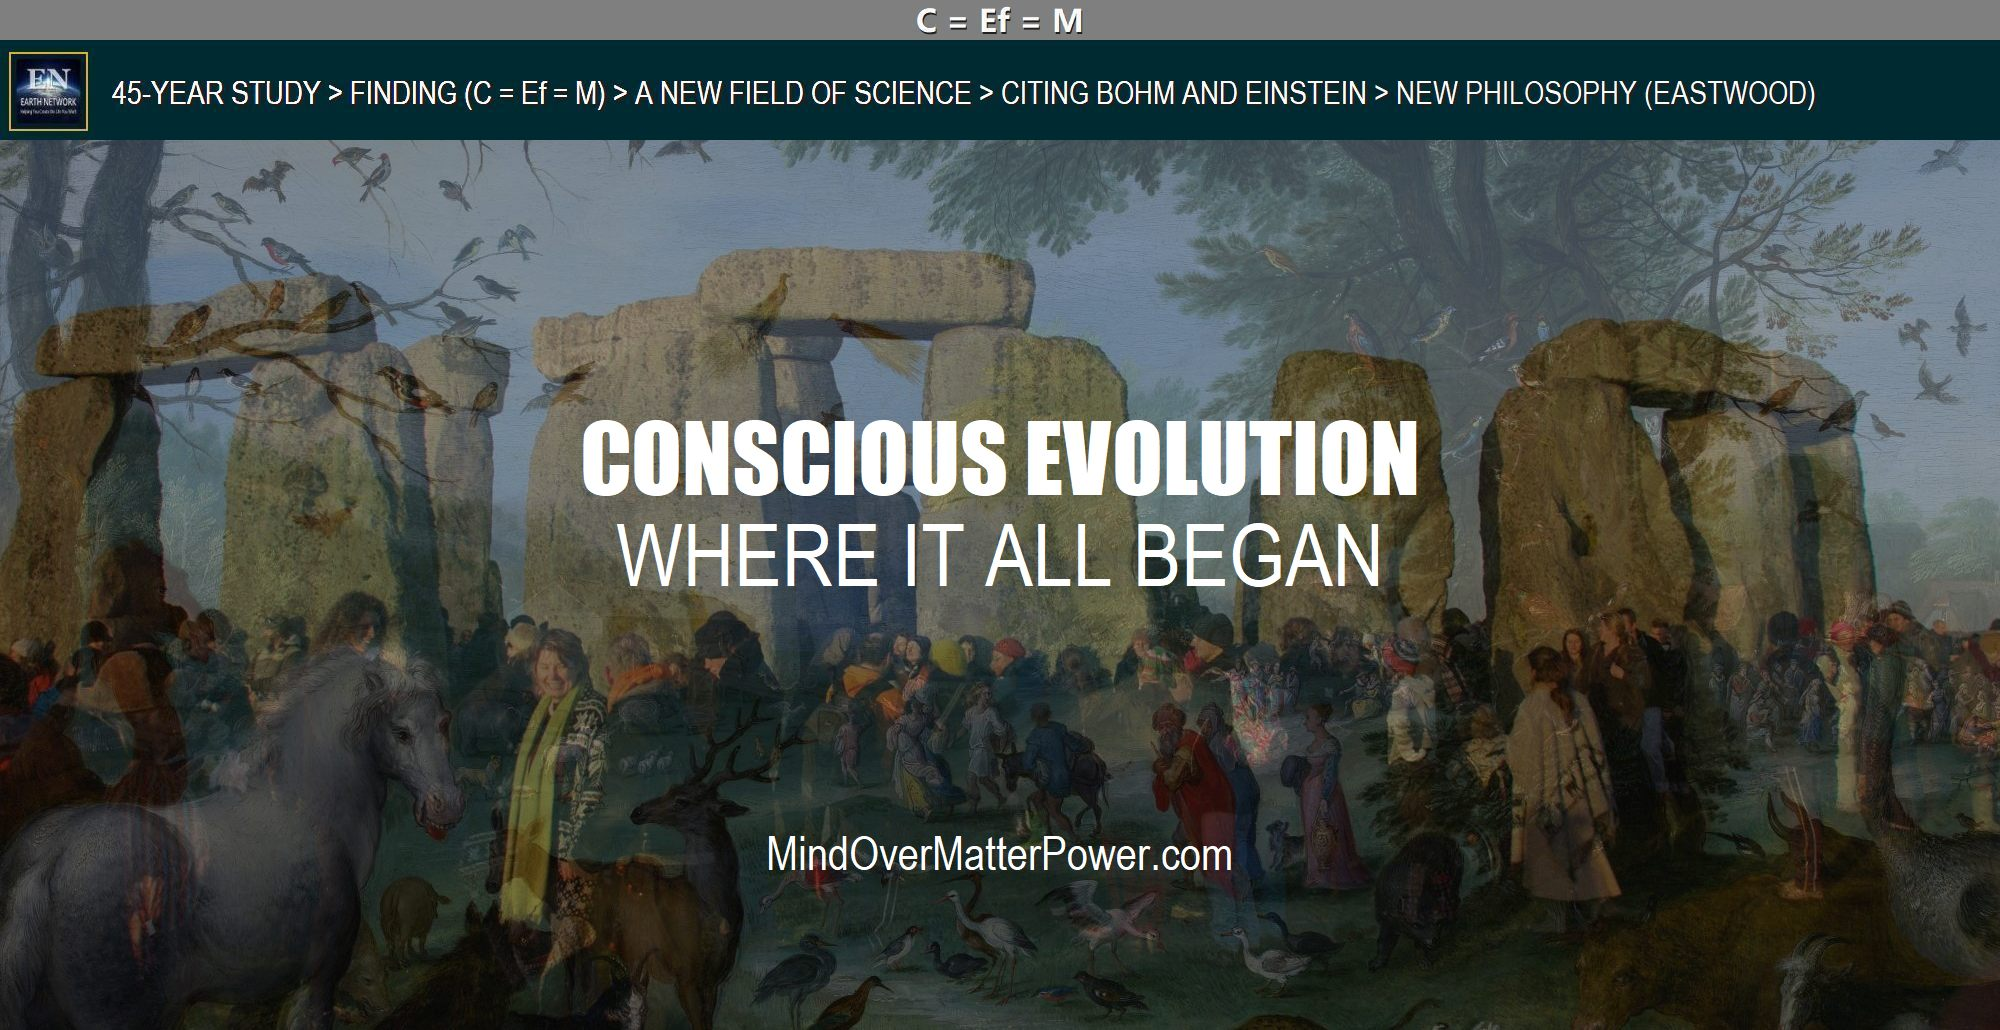 what-is-conscious-evolution-how-is-consciousness-created-where-does-consciousness-come-from-history-self-consciousness-ego-perception-origin-beginning-2